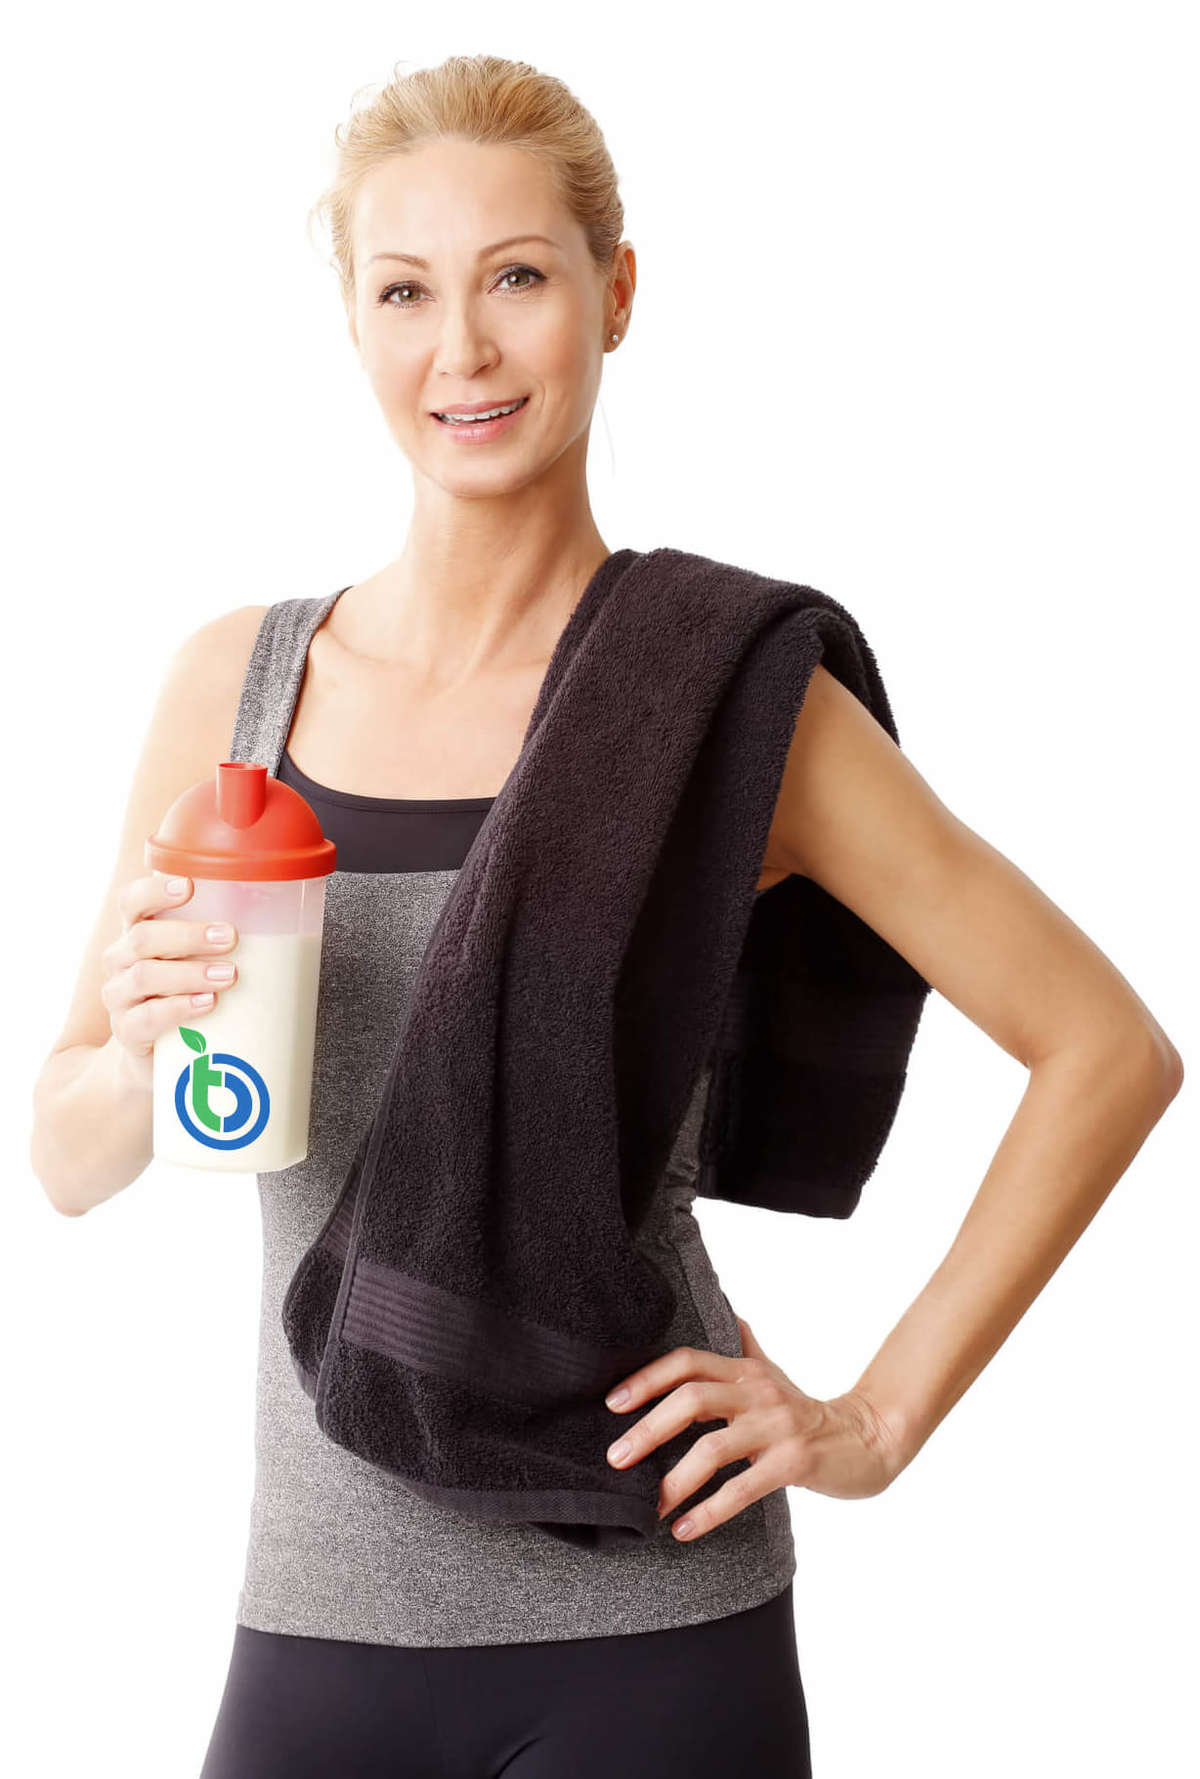 Working Out Woman with Blender Bottle